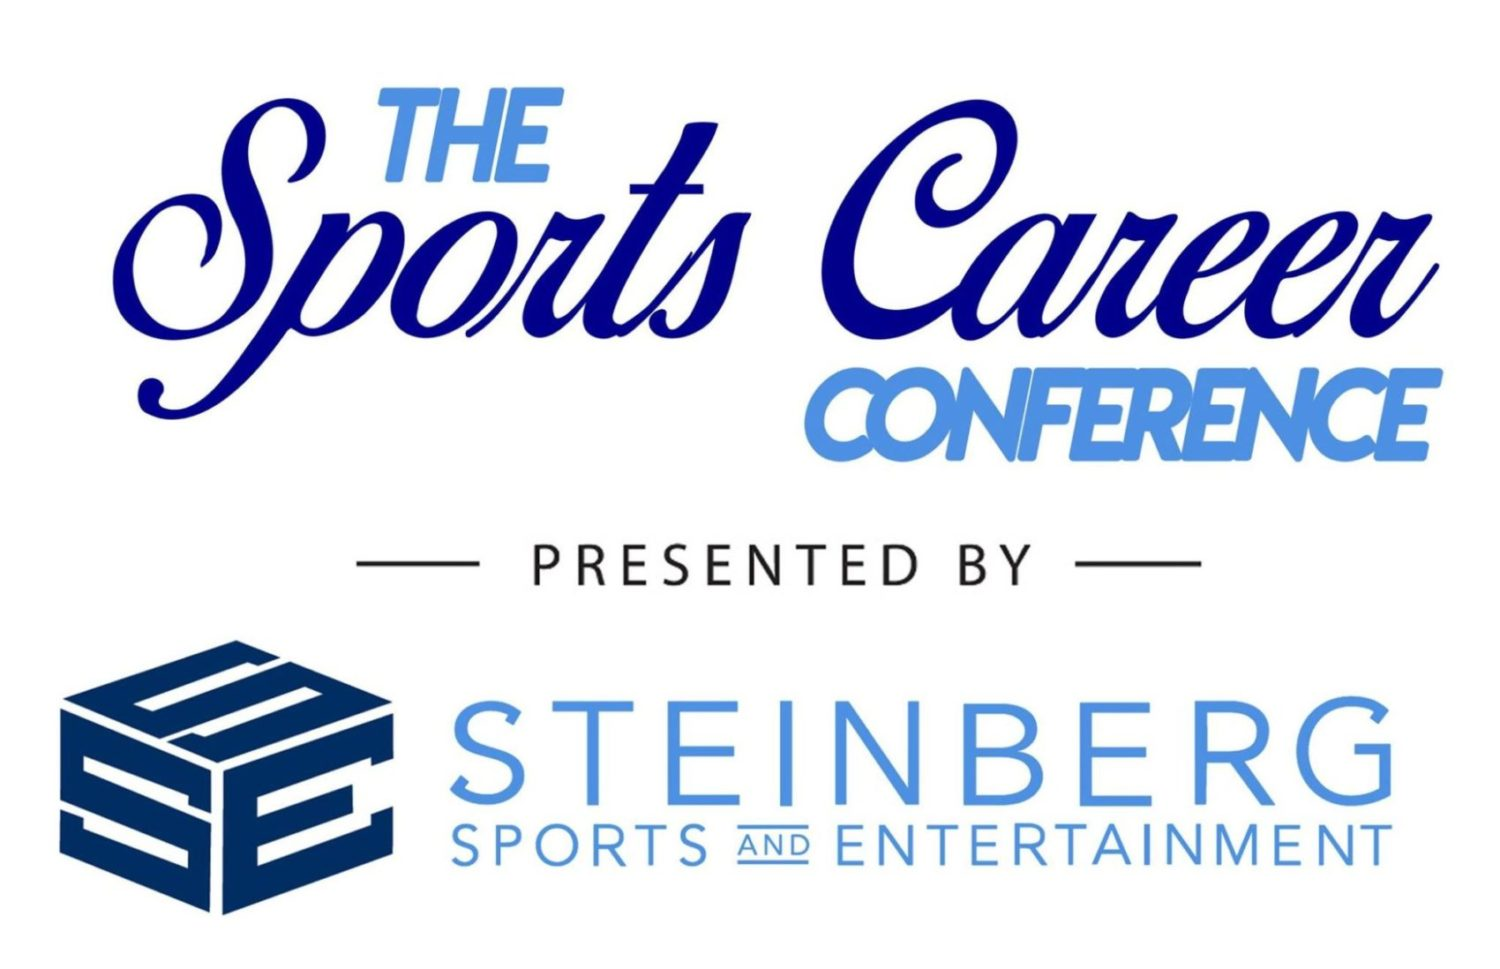 Steinberg Sports Career Conference